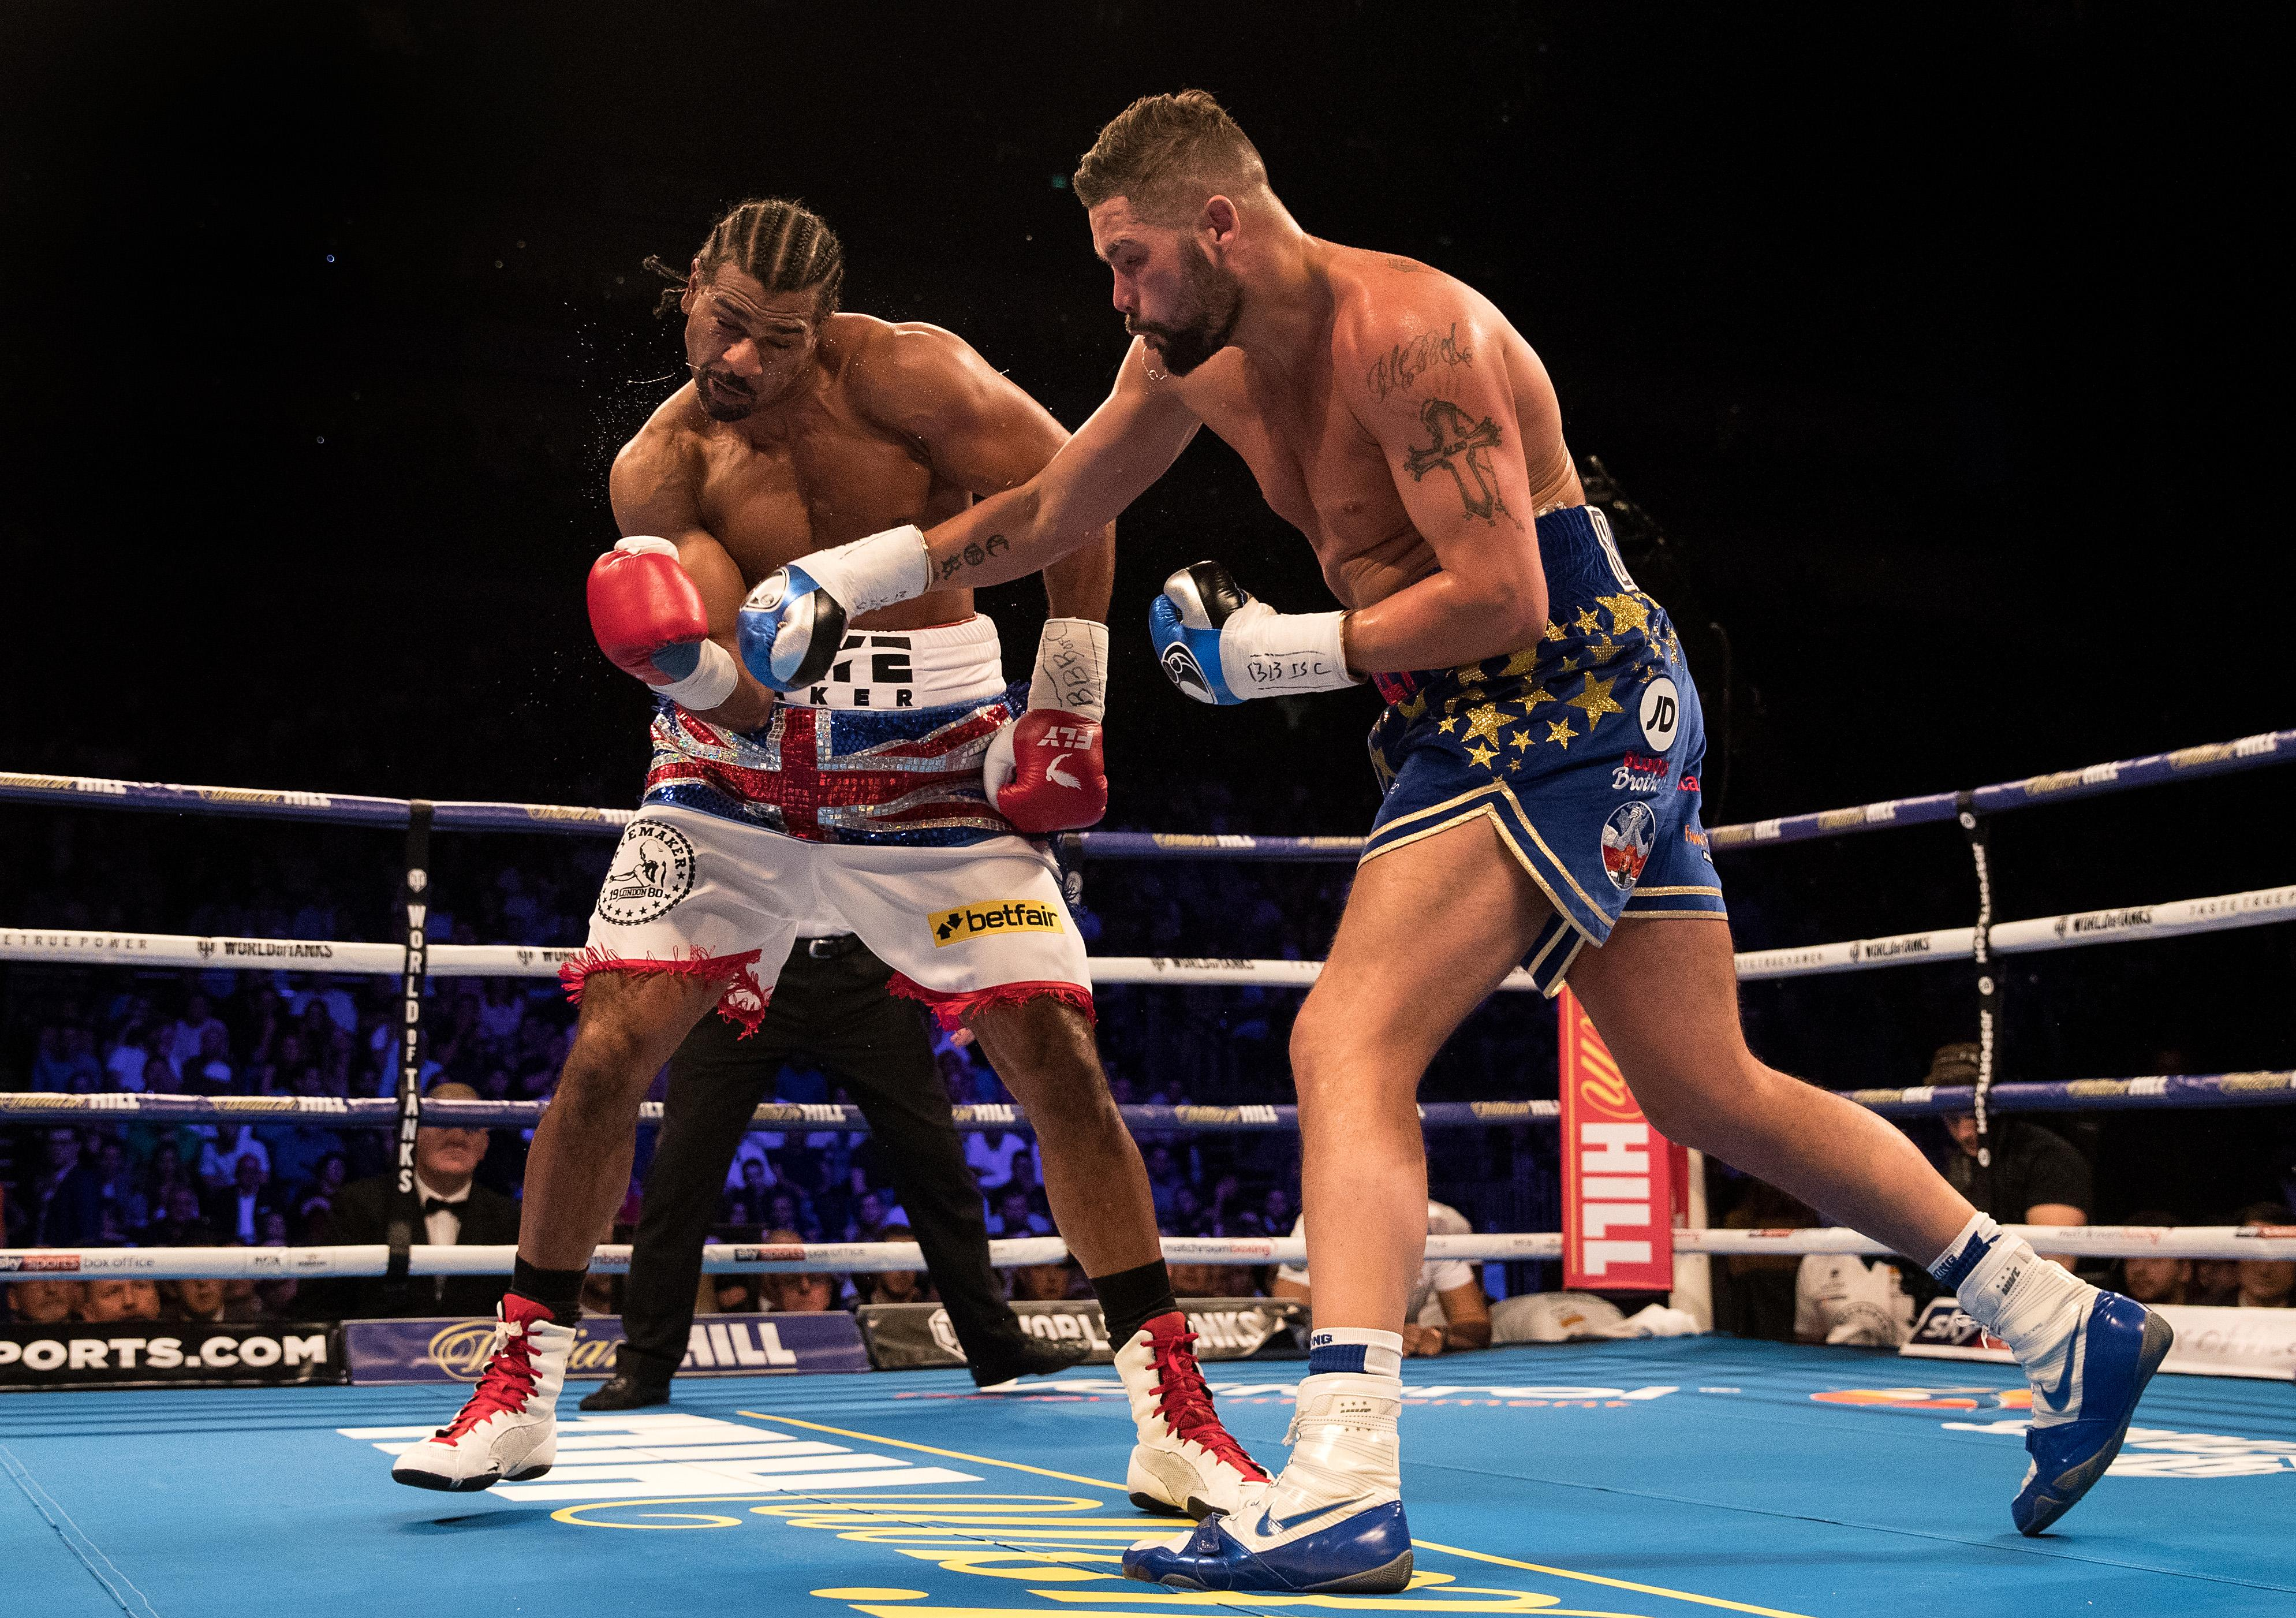 Bellew moved up to heavyweight to fight Haye, beating his rival twice by knockout